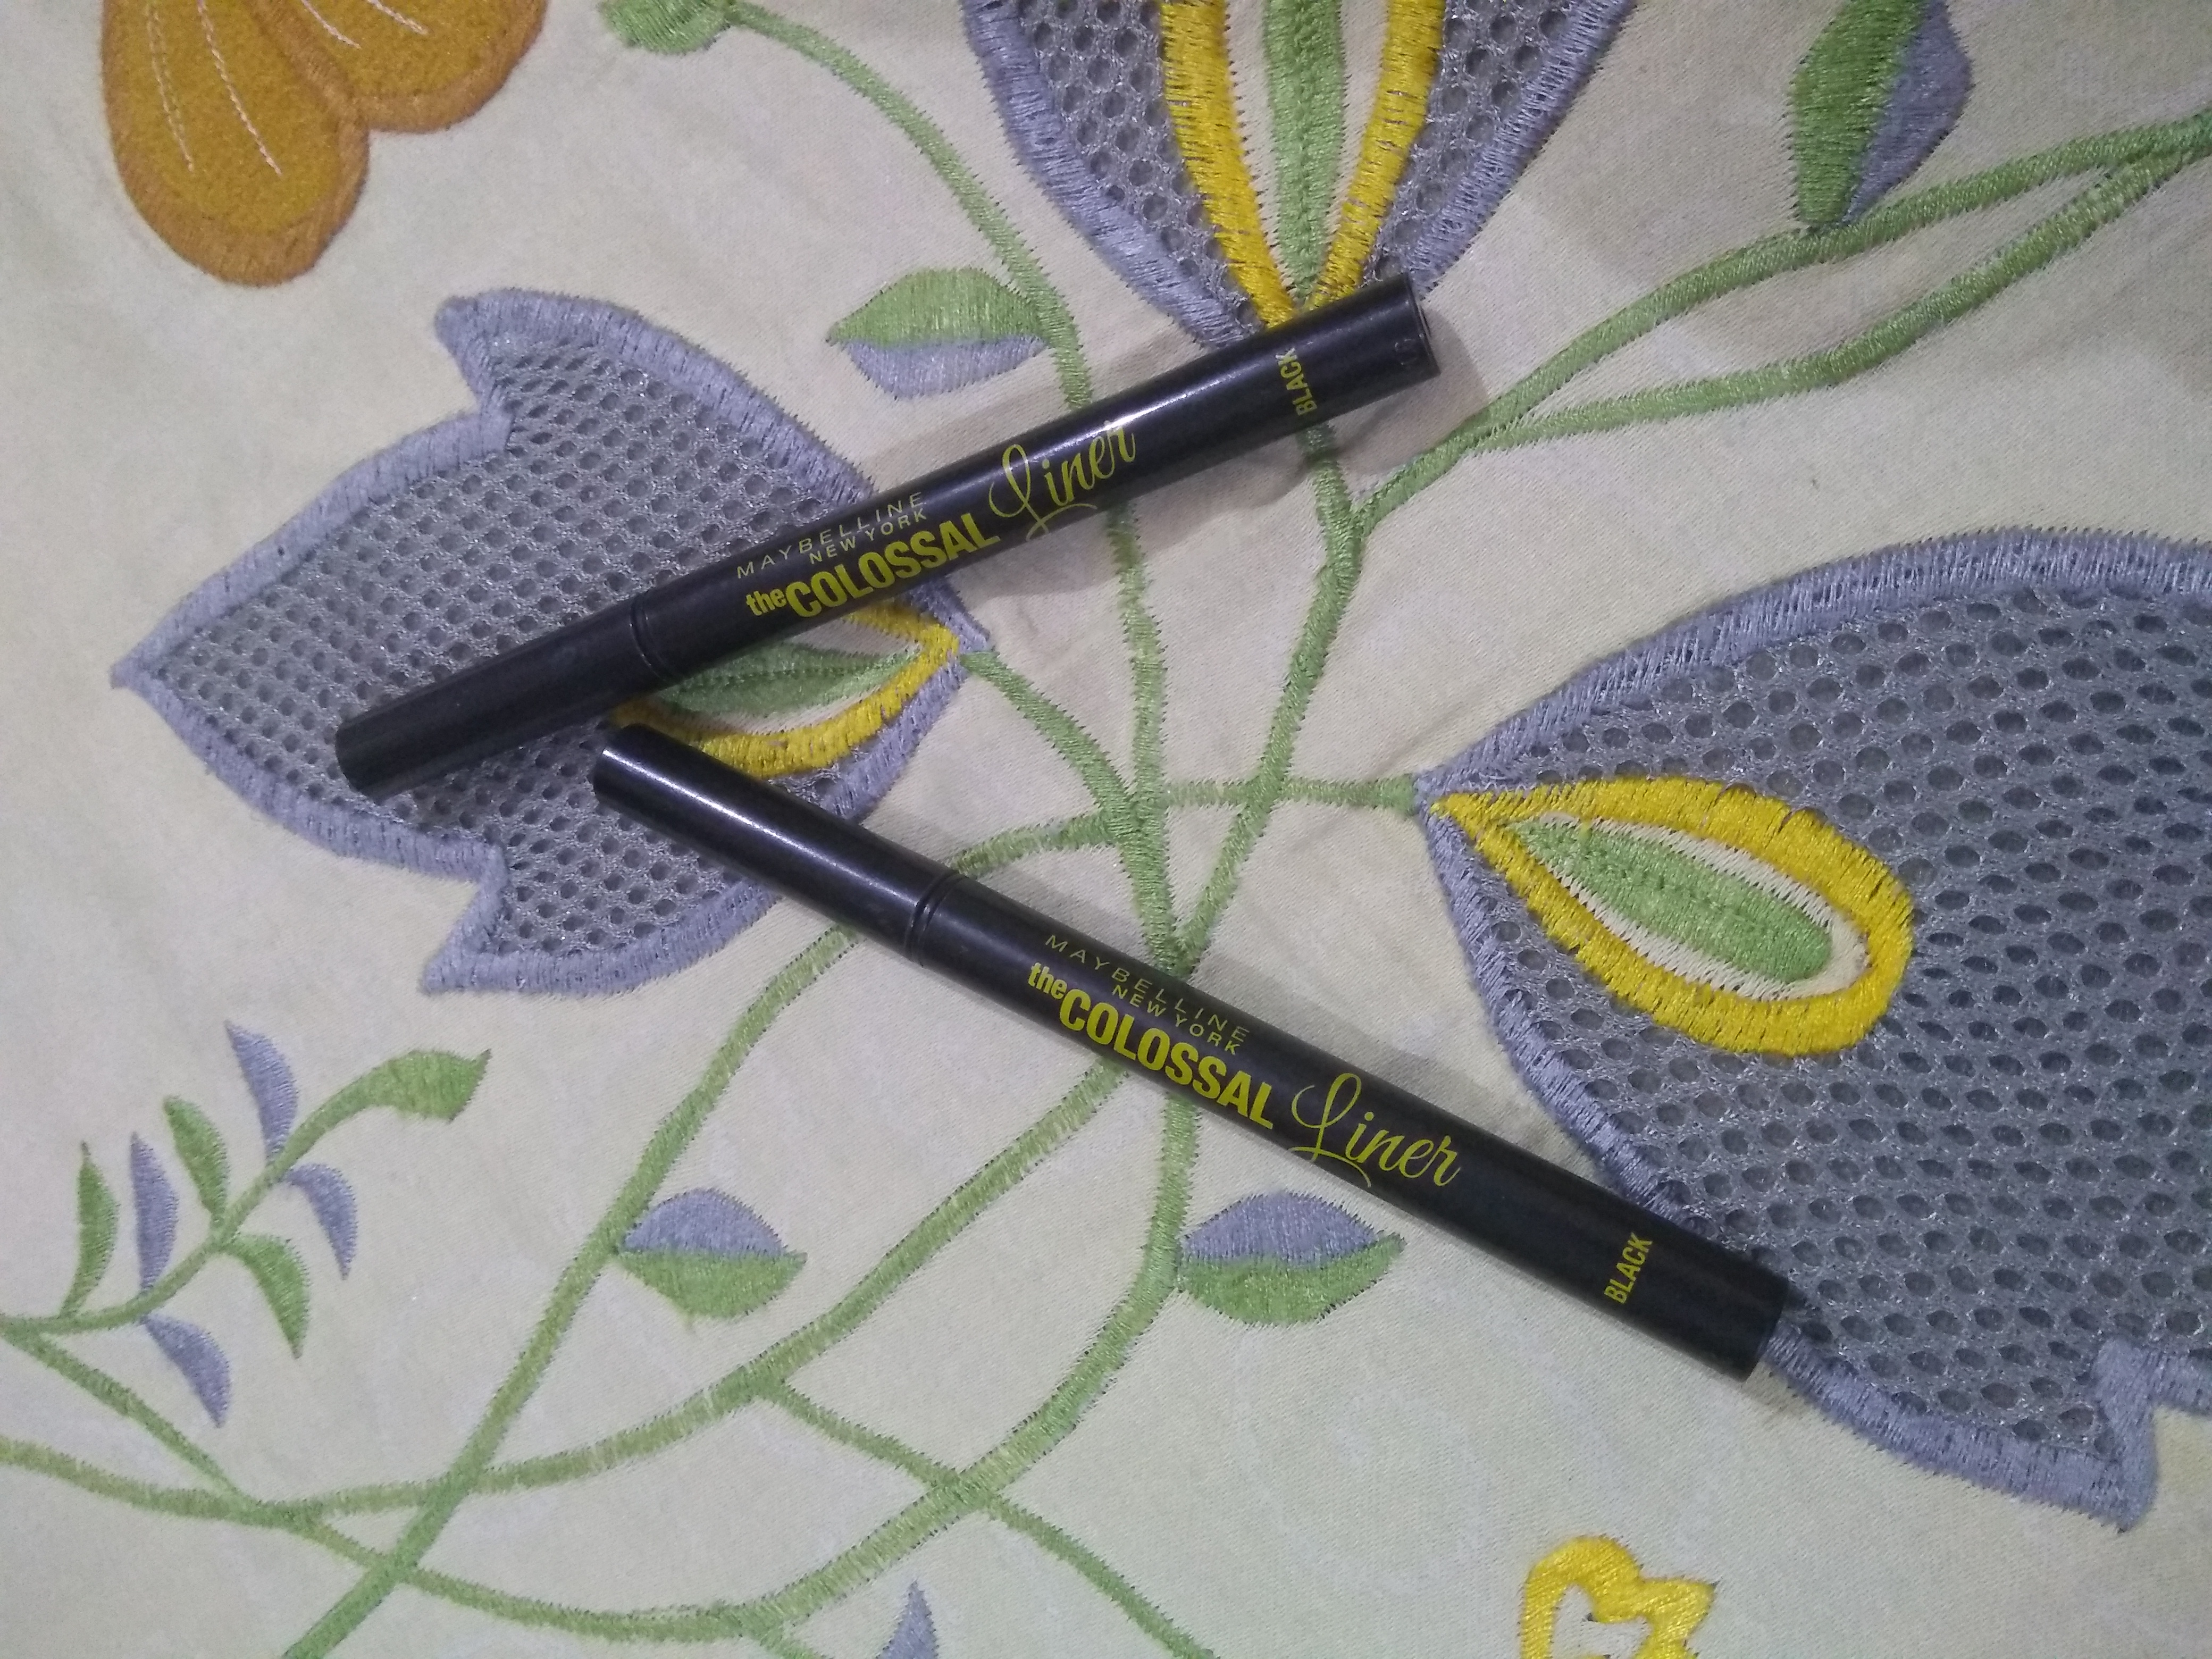 Maybelline New York The Colossal Liner-Pen Liners, Perfectly designed for beginners-By ankita_agarwal